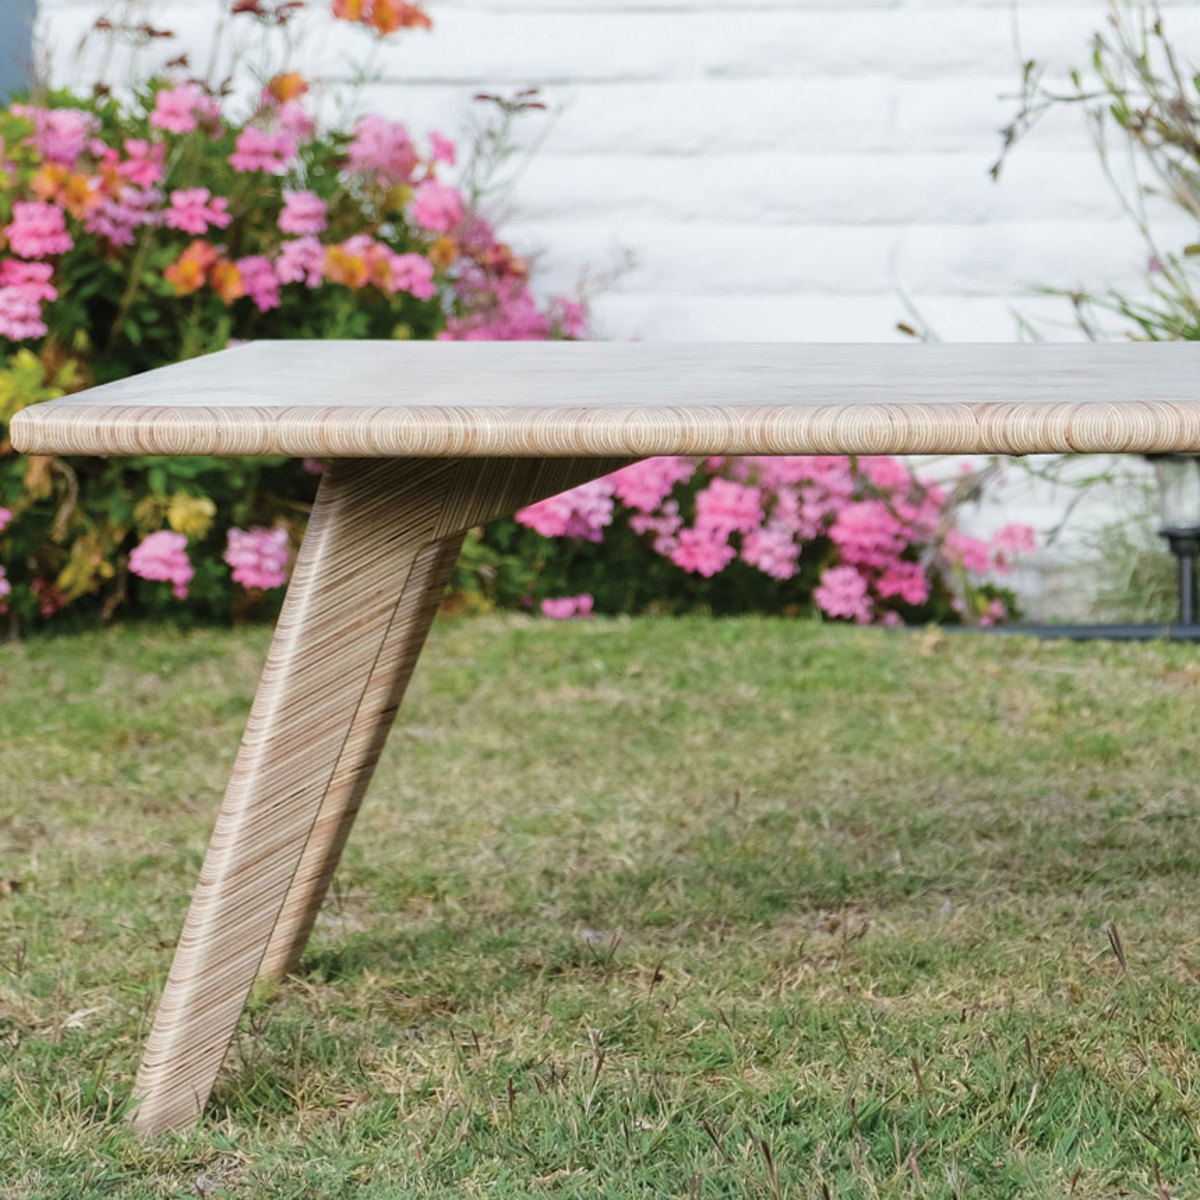 This coffee table by OSO DIY, a project sharing website, took first place in the Rockler Plywood Challenge.